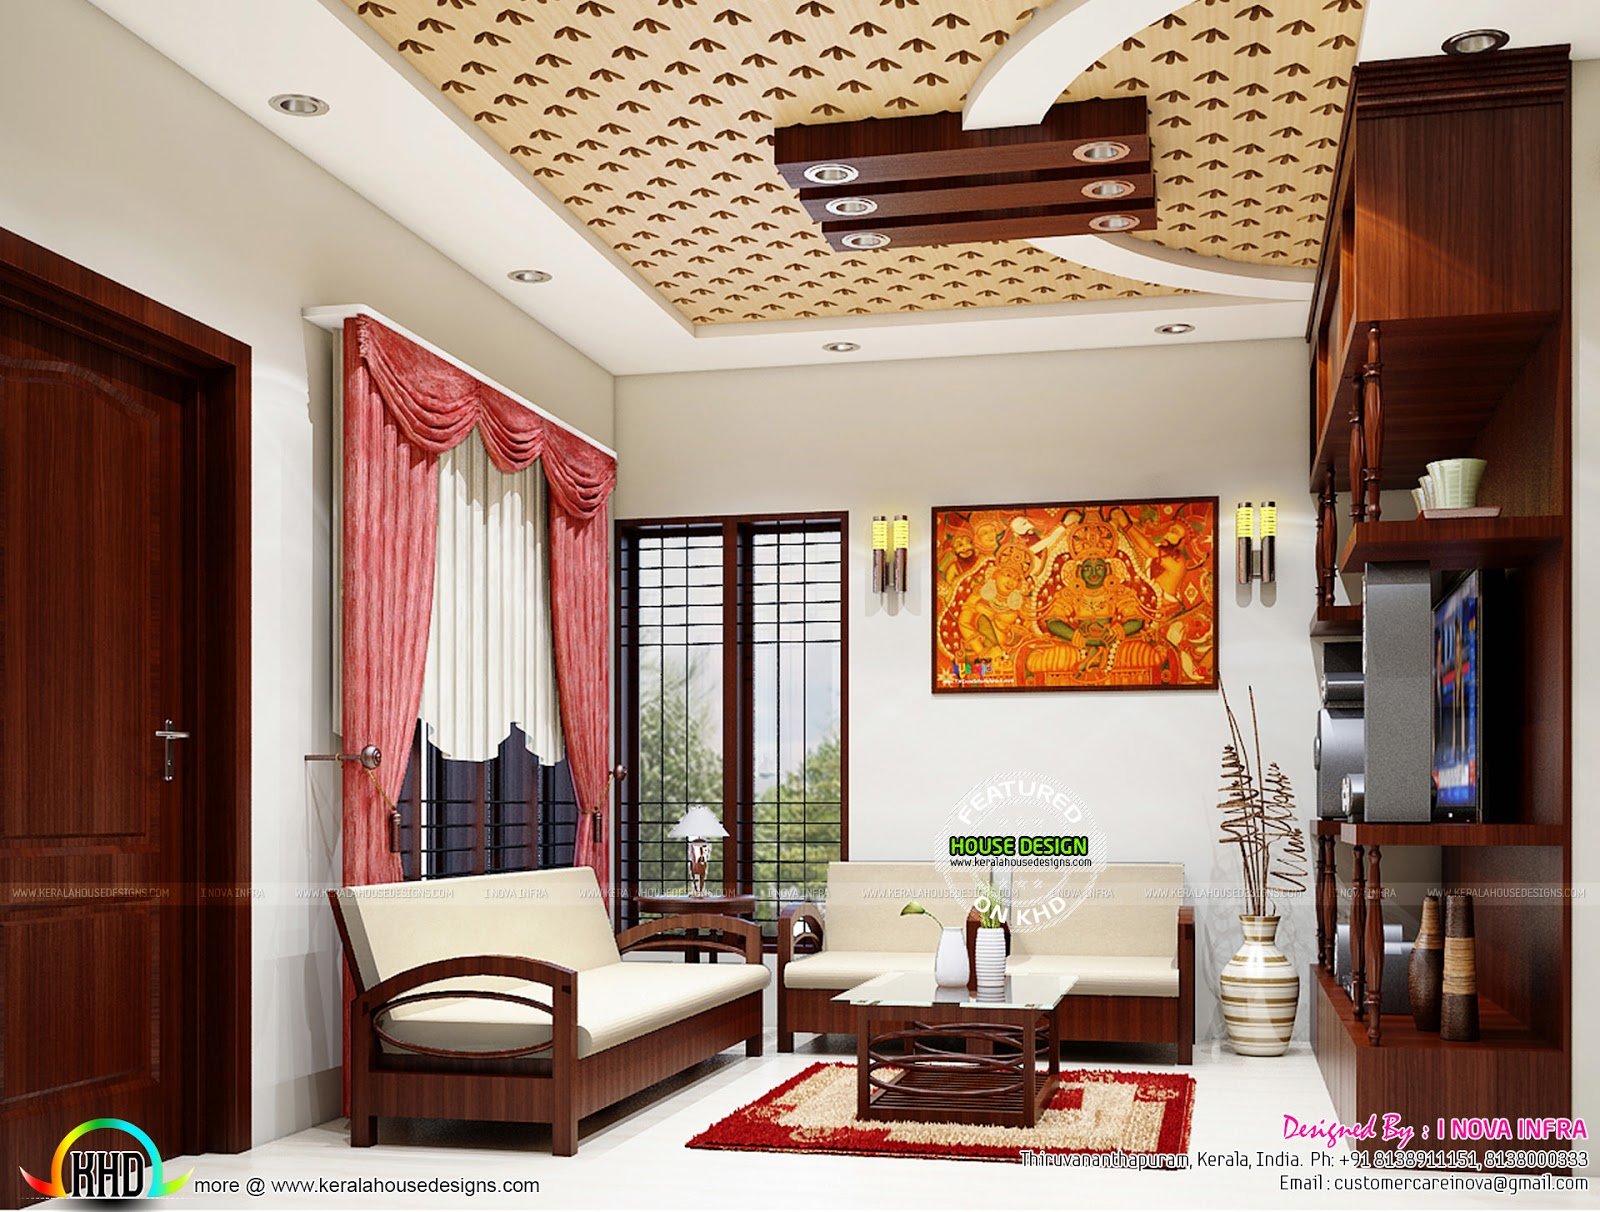 Kerala traditional interiors kerala home design and for House interior design living room